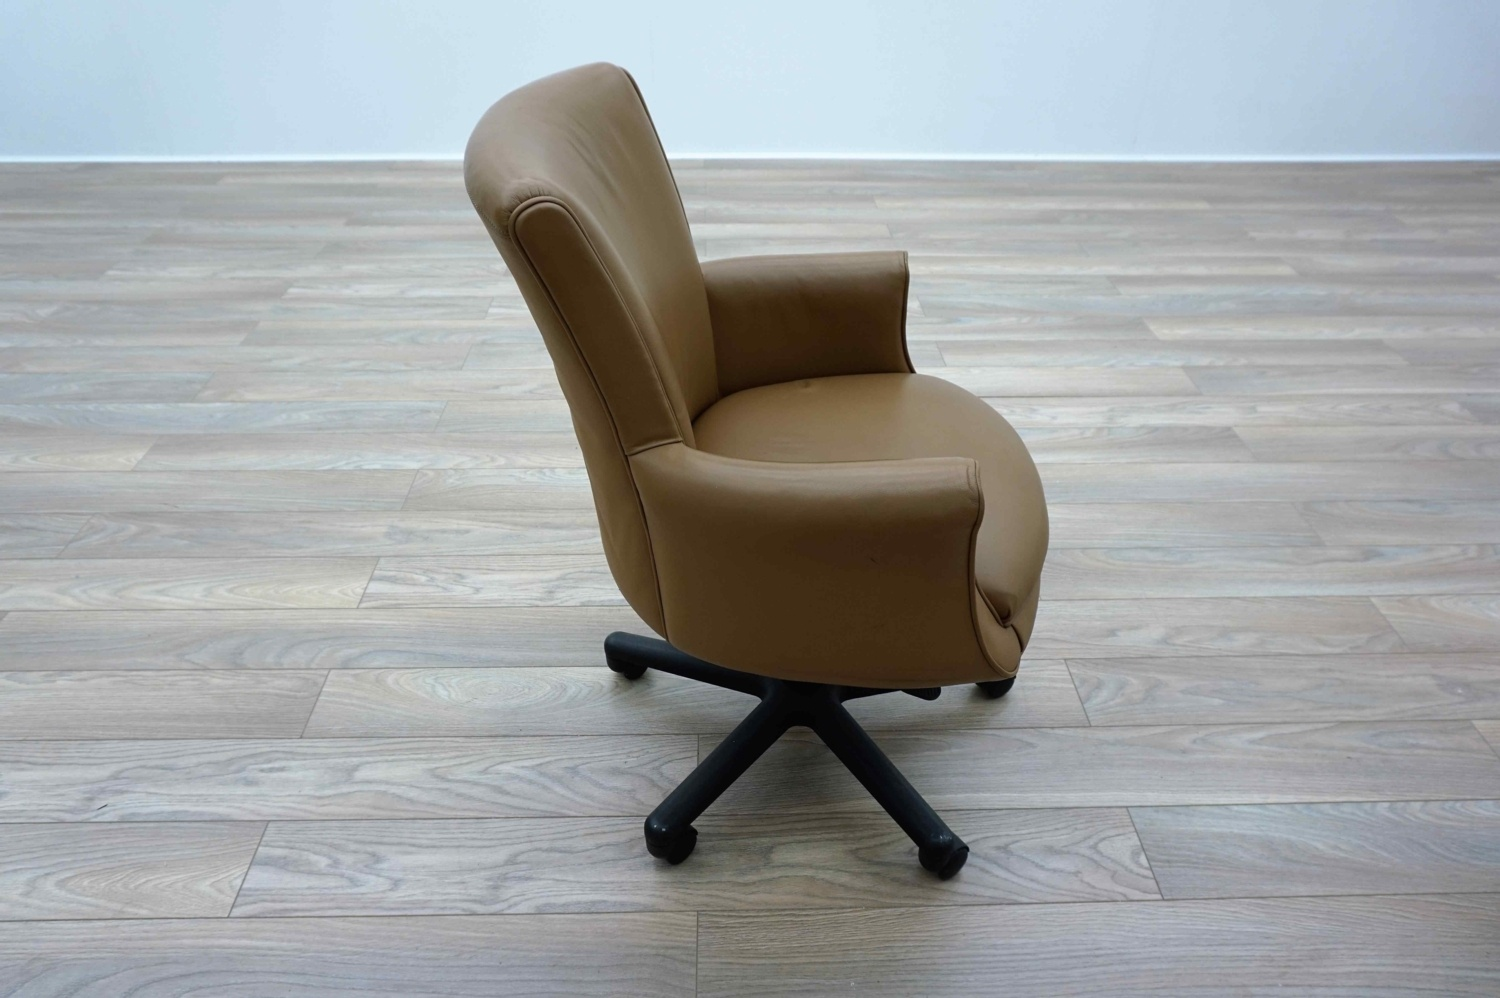 Bernhardt Tan Leather Executive Office Meeting Chairs Ebay